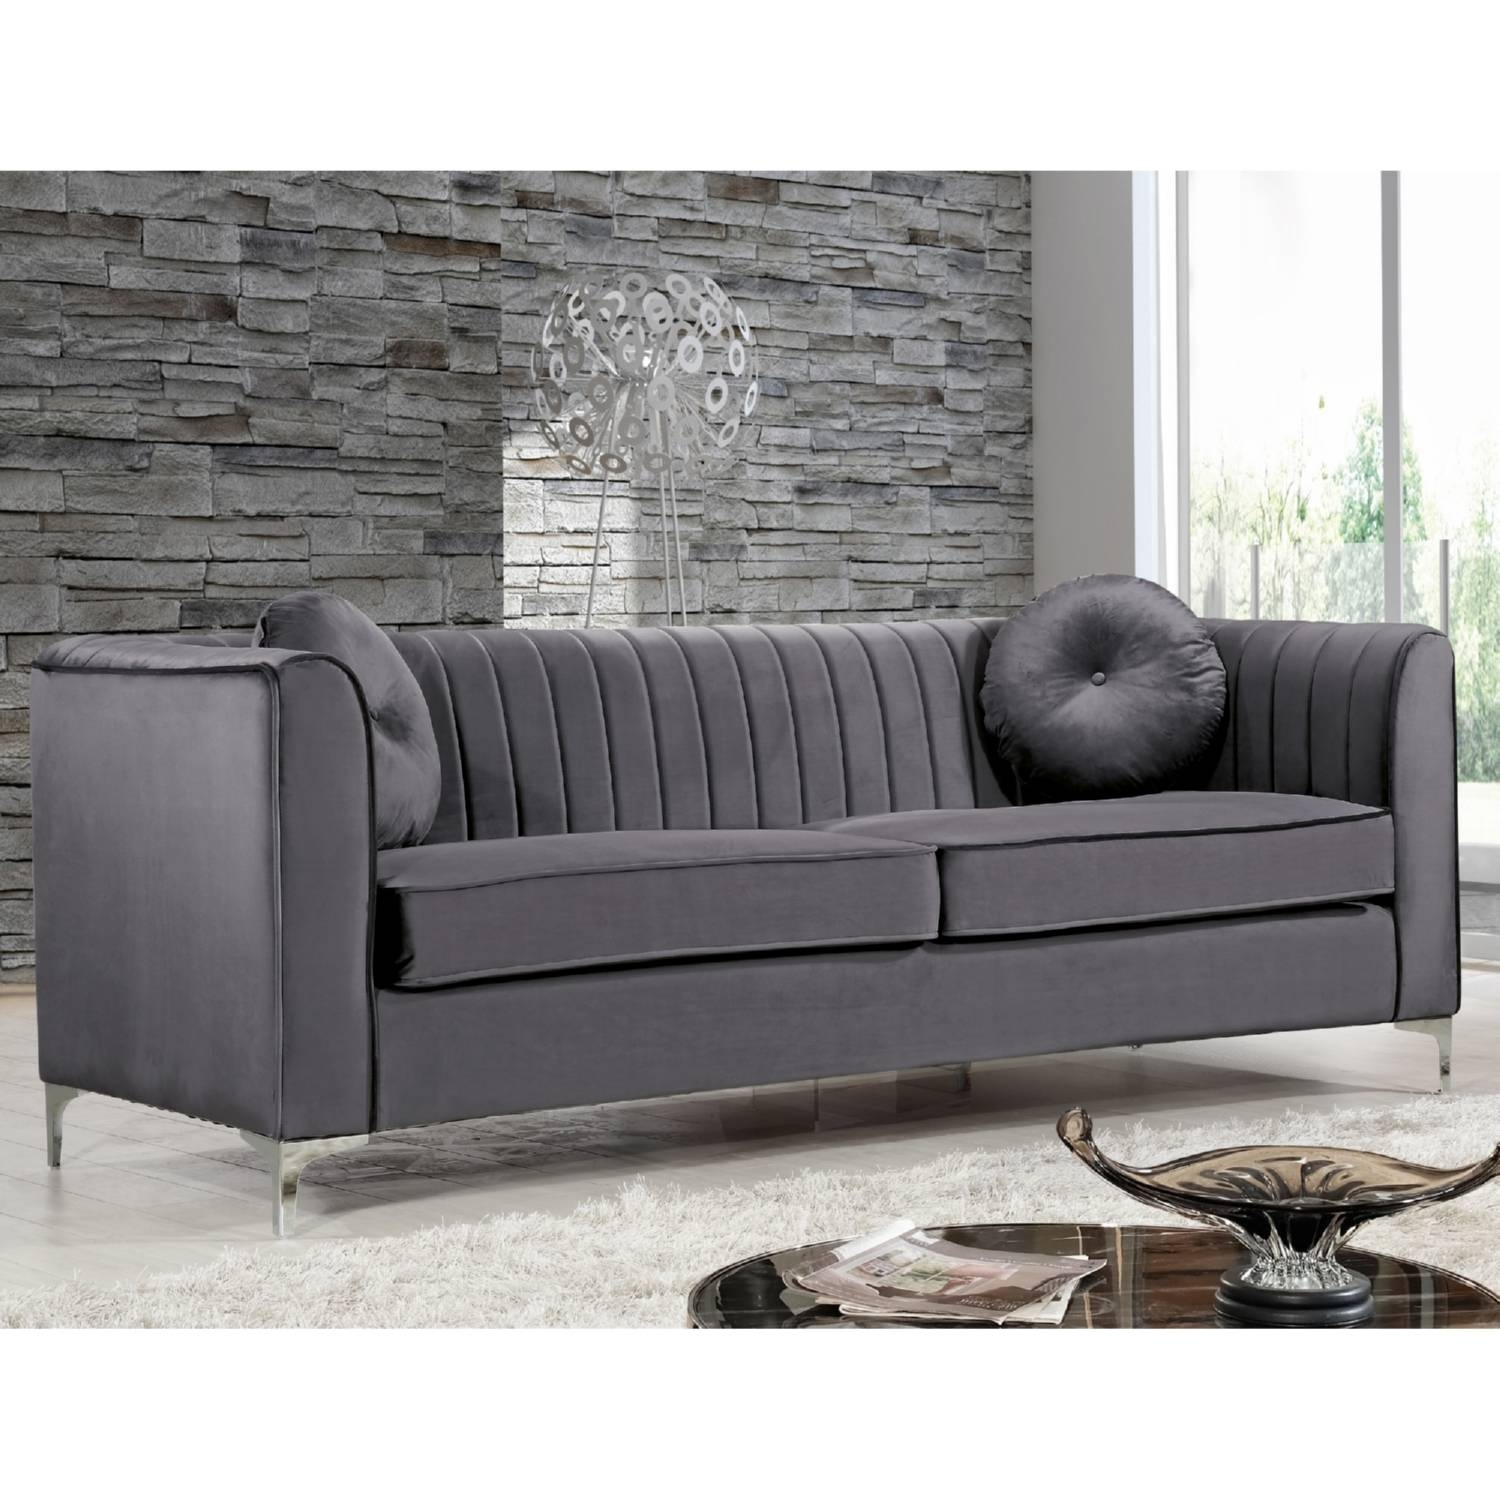 Furniture: Best Quality Grey Velvet Sofa For Your Living Room intended for Sofas With Chrome Legs (Image 9 of 15)